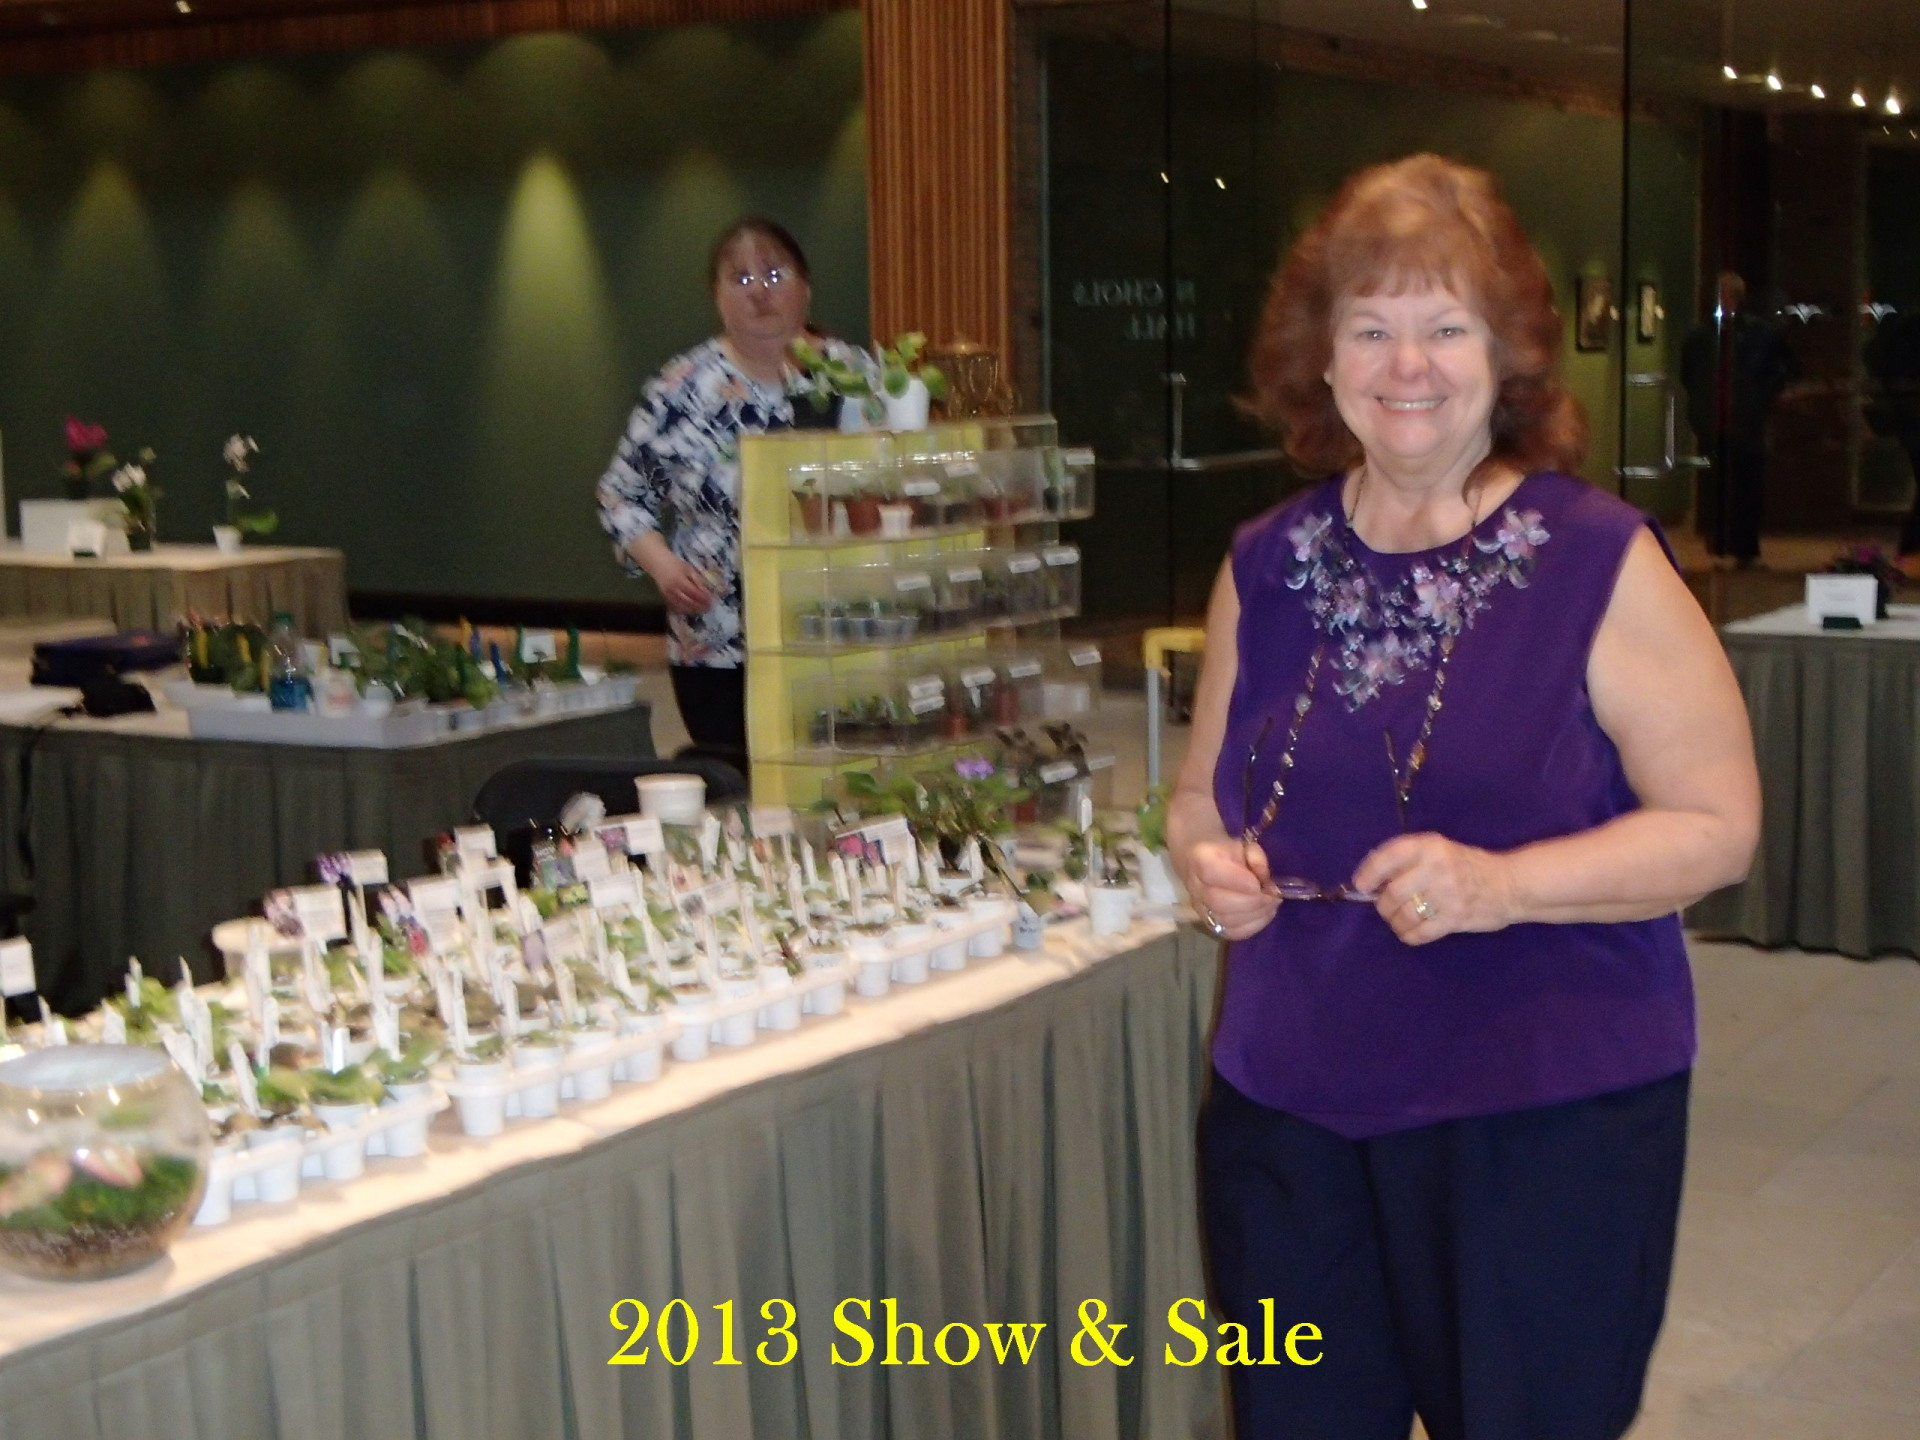 Member Sales Table at Show